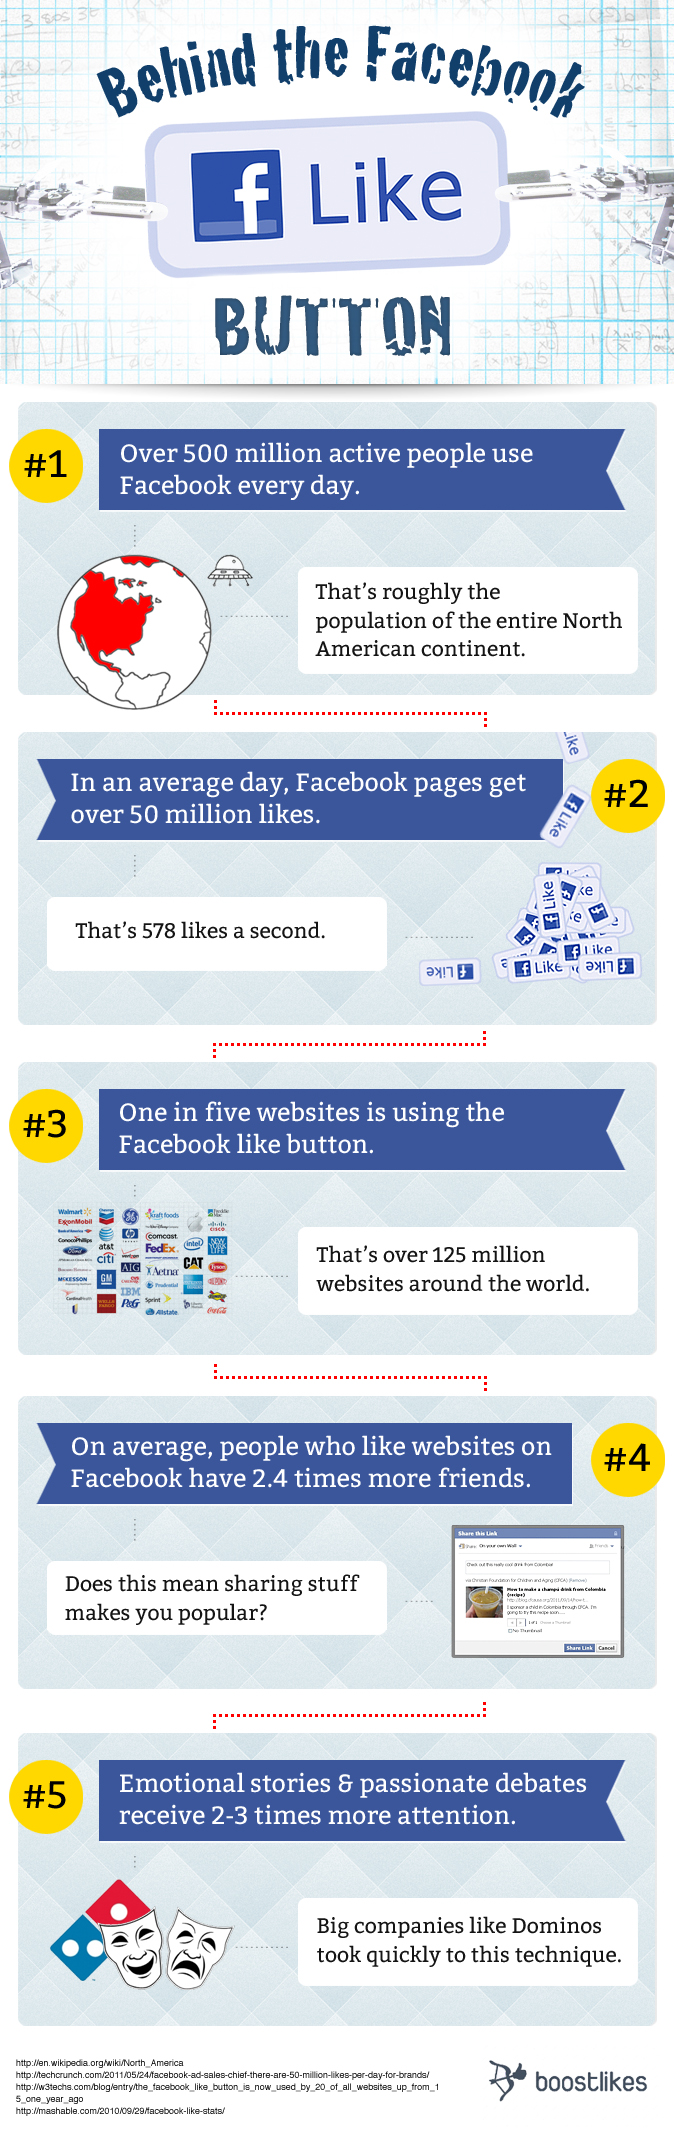 Facts About the Facebook Like Button